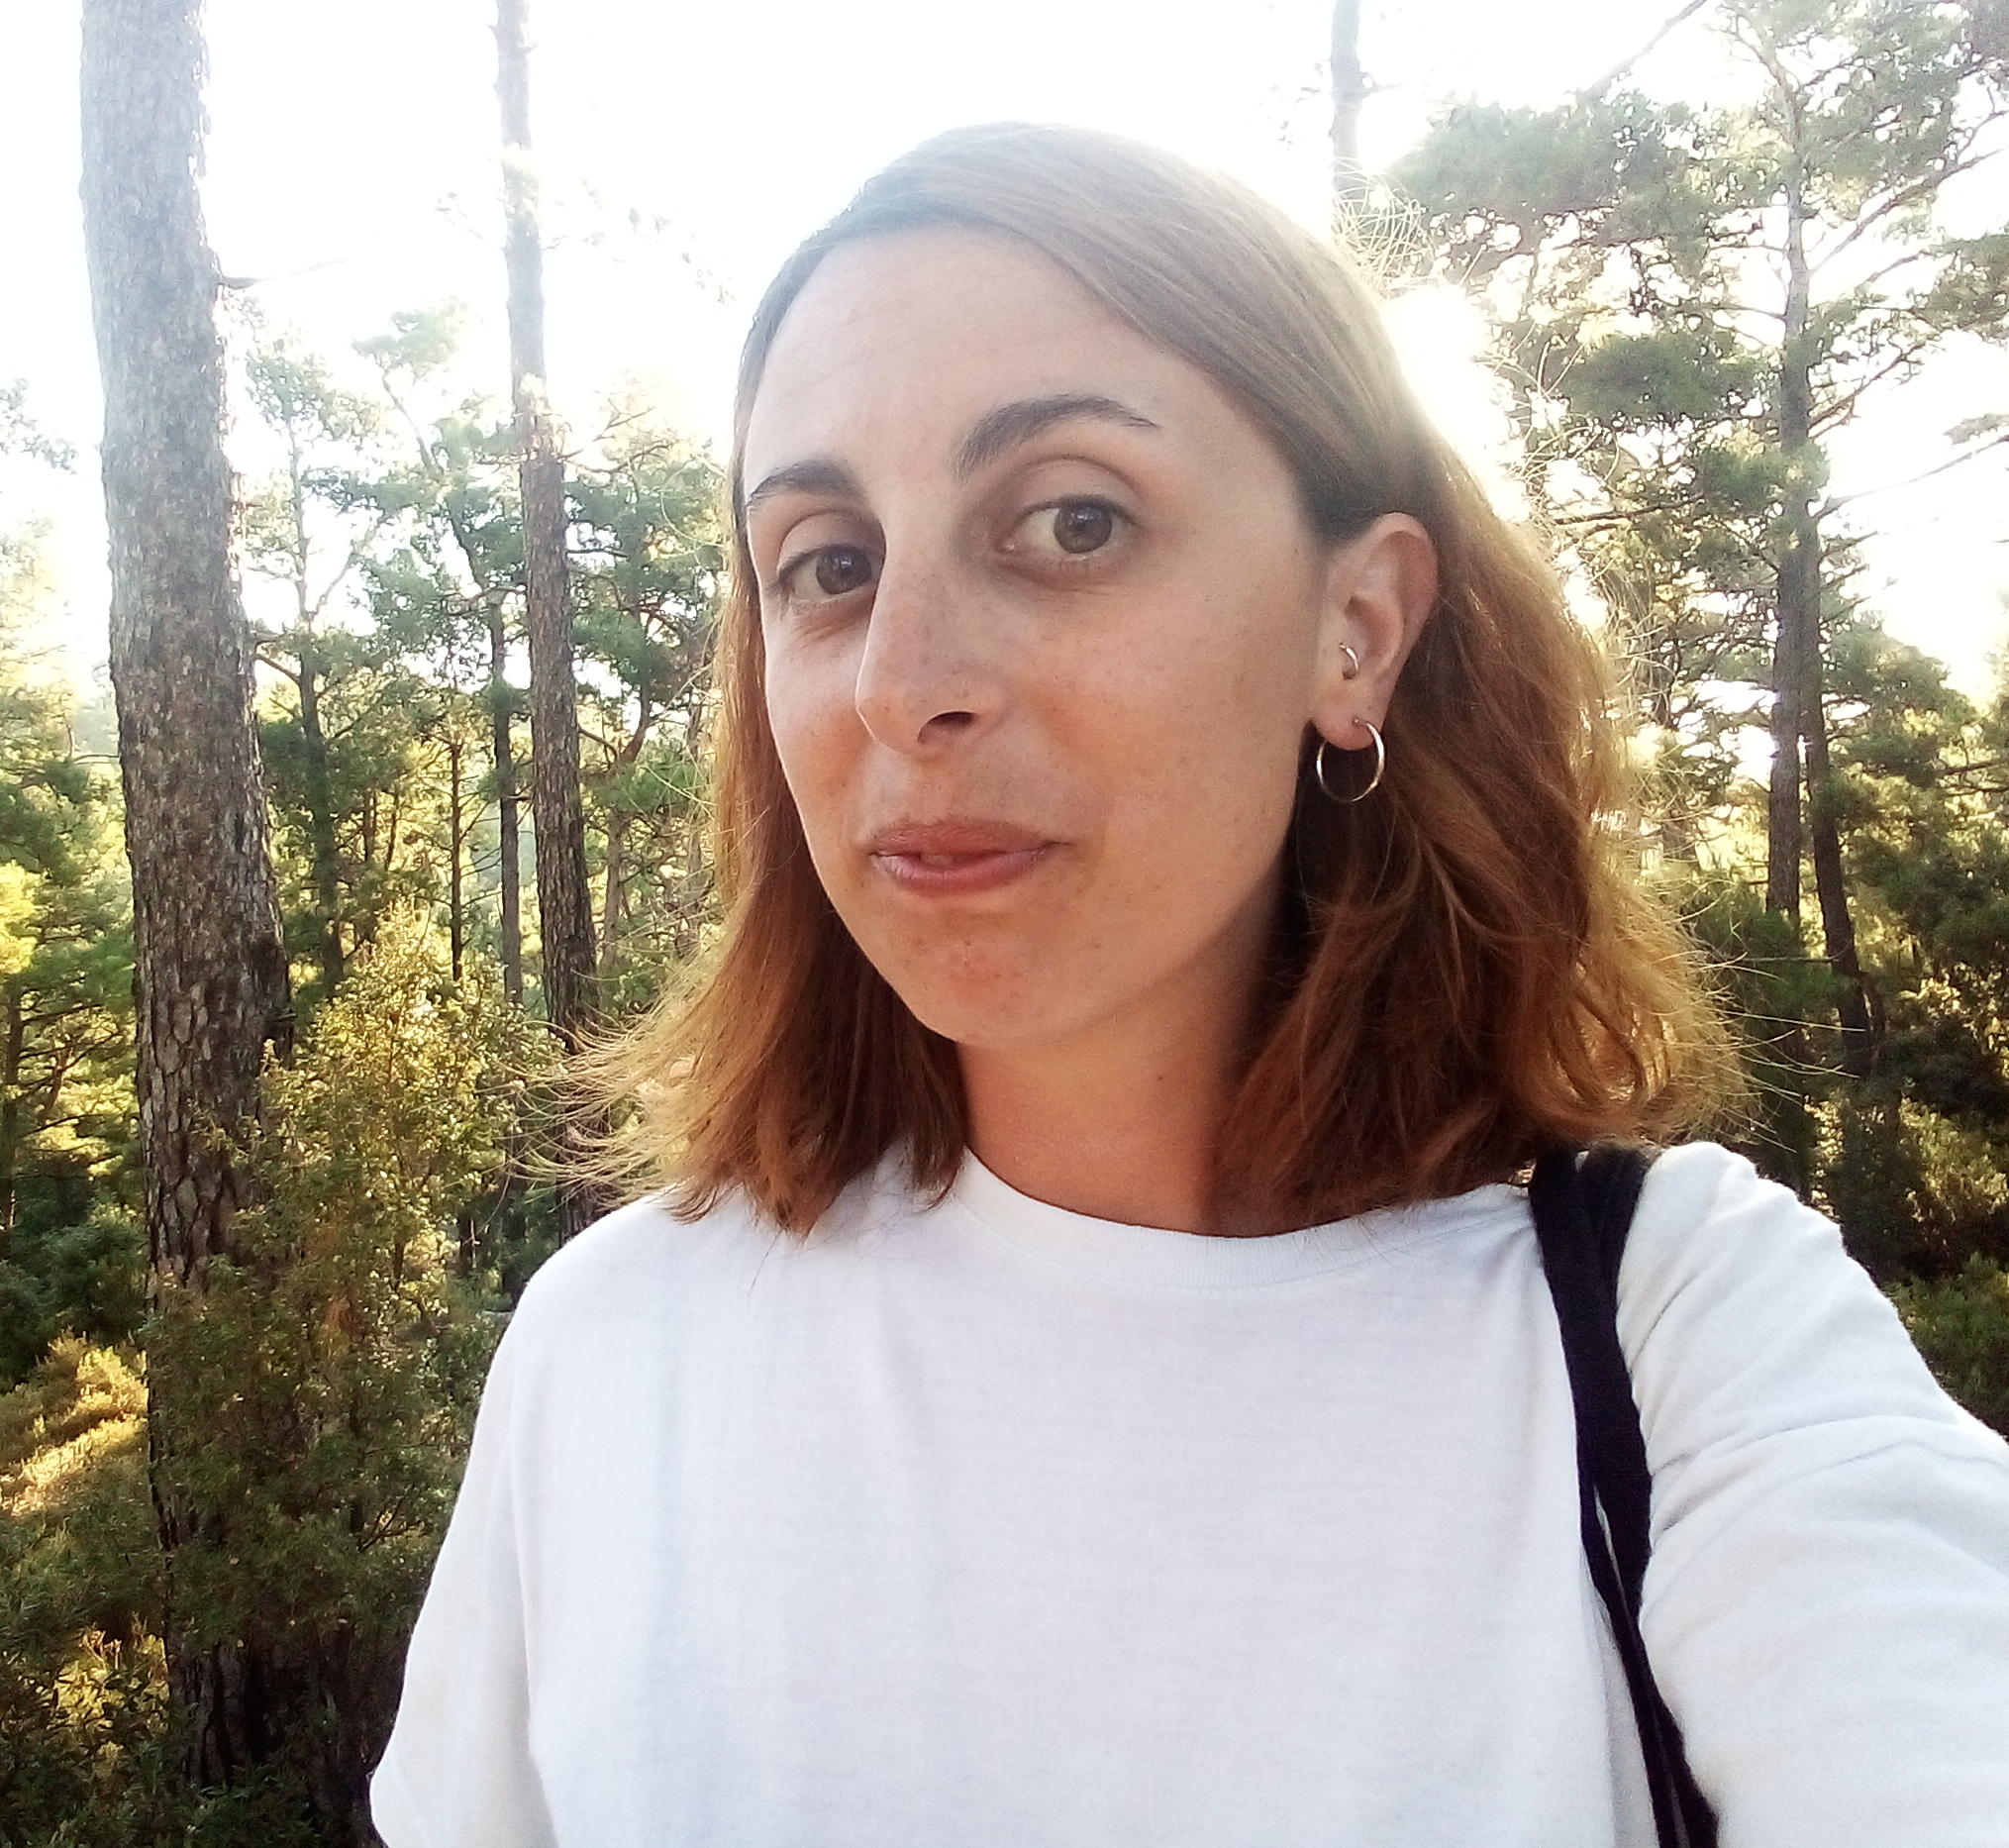 Caterina Avataneo is looking into the camera and smiling. She is in a forest and it's sunny. She is wearing a white t-shirt and has orange and brown shoulder-length hair.